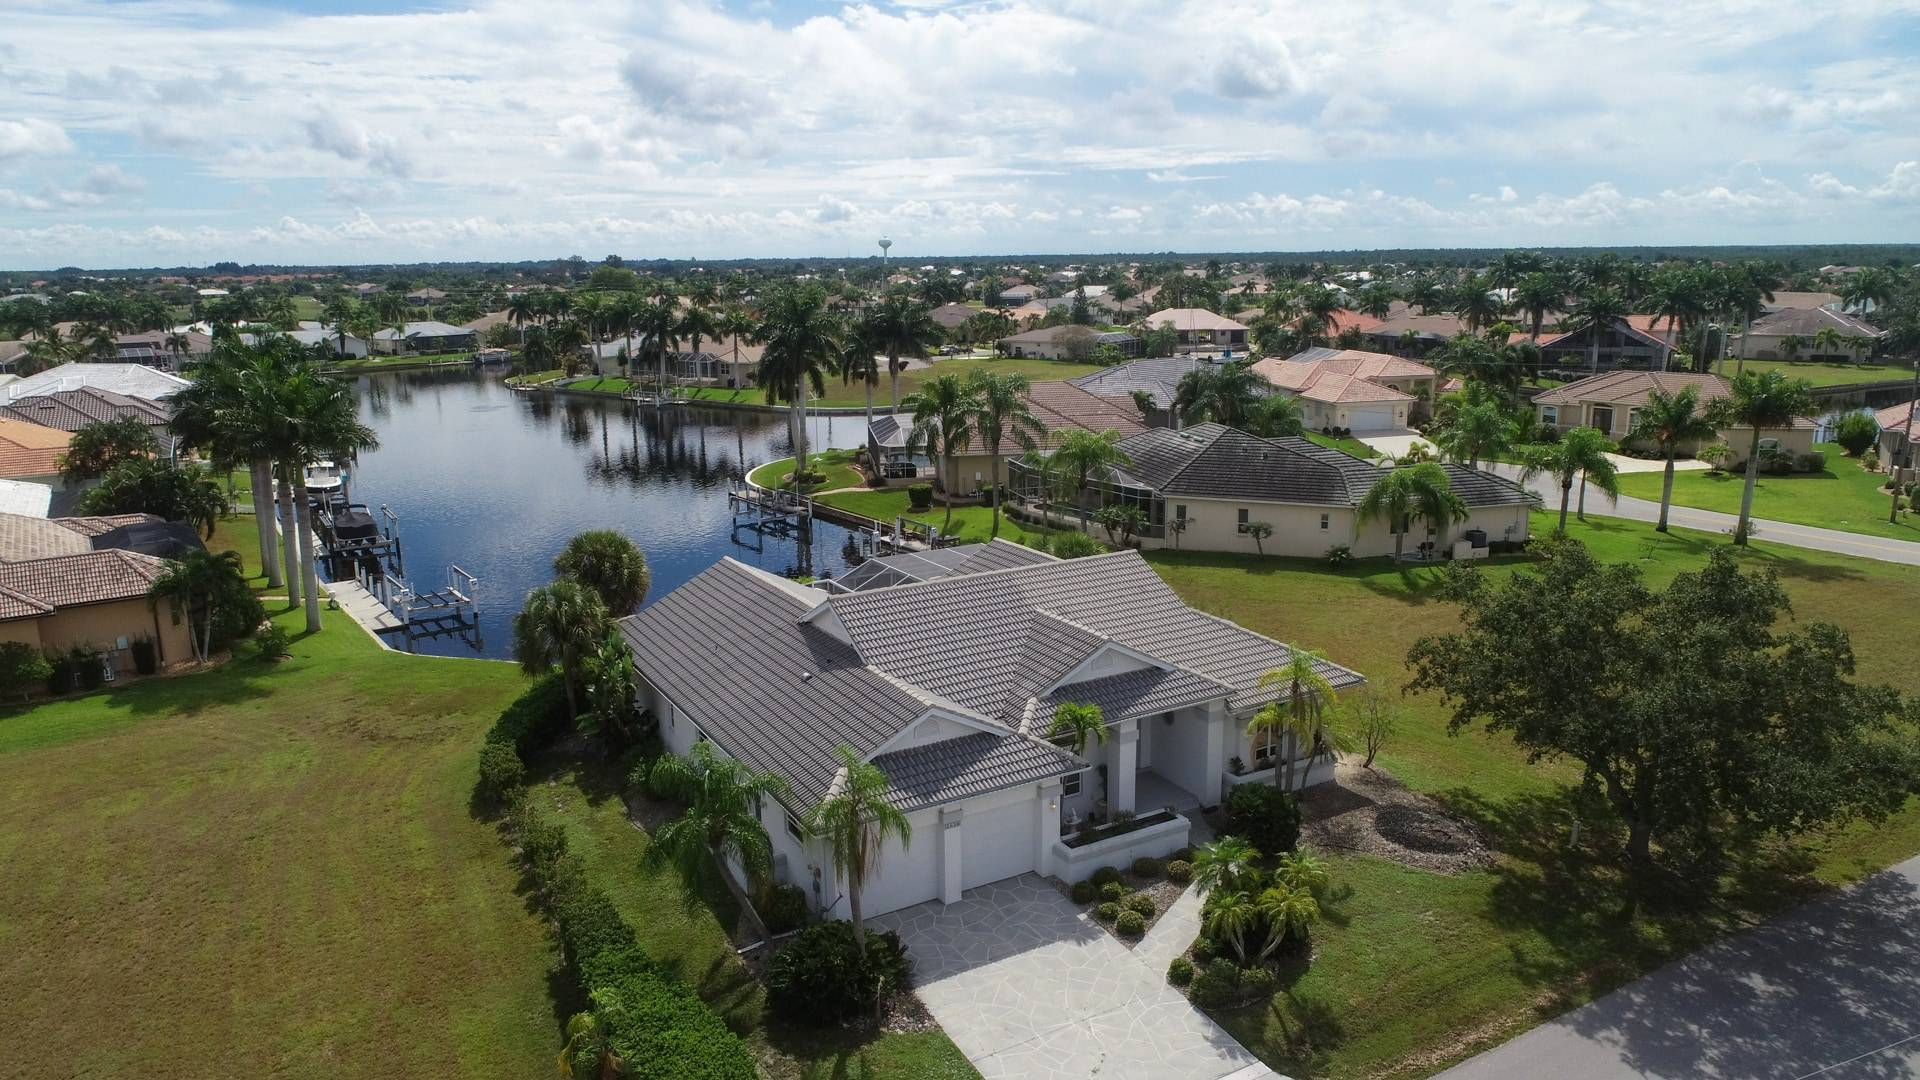 3836 Paola Dr-212758